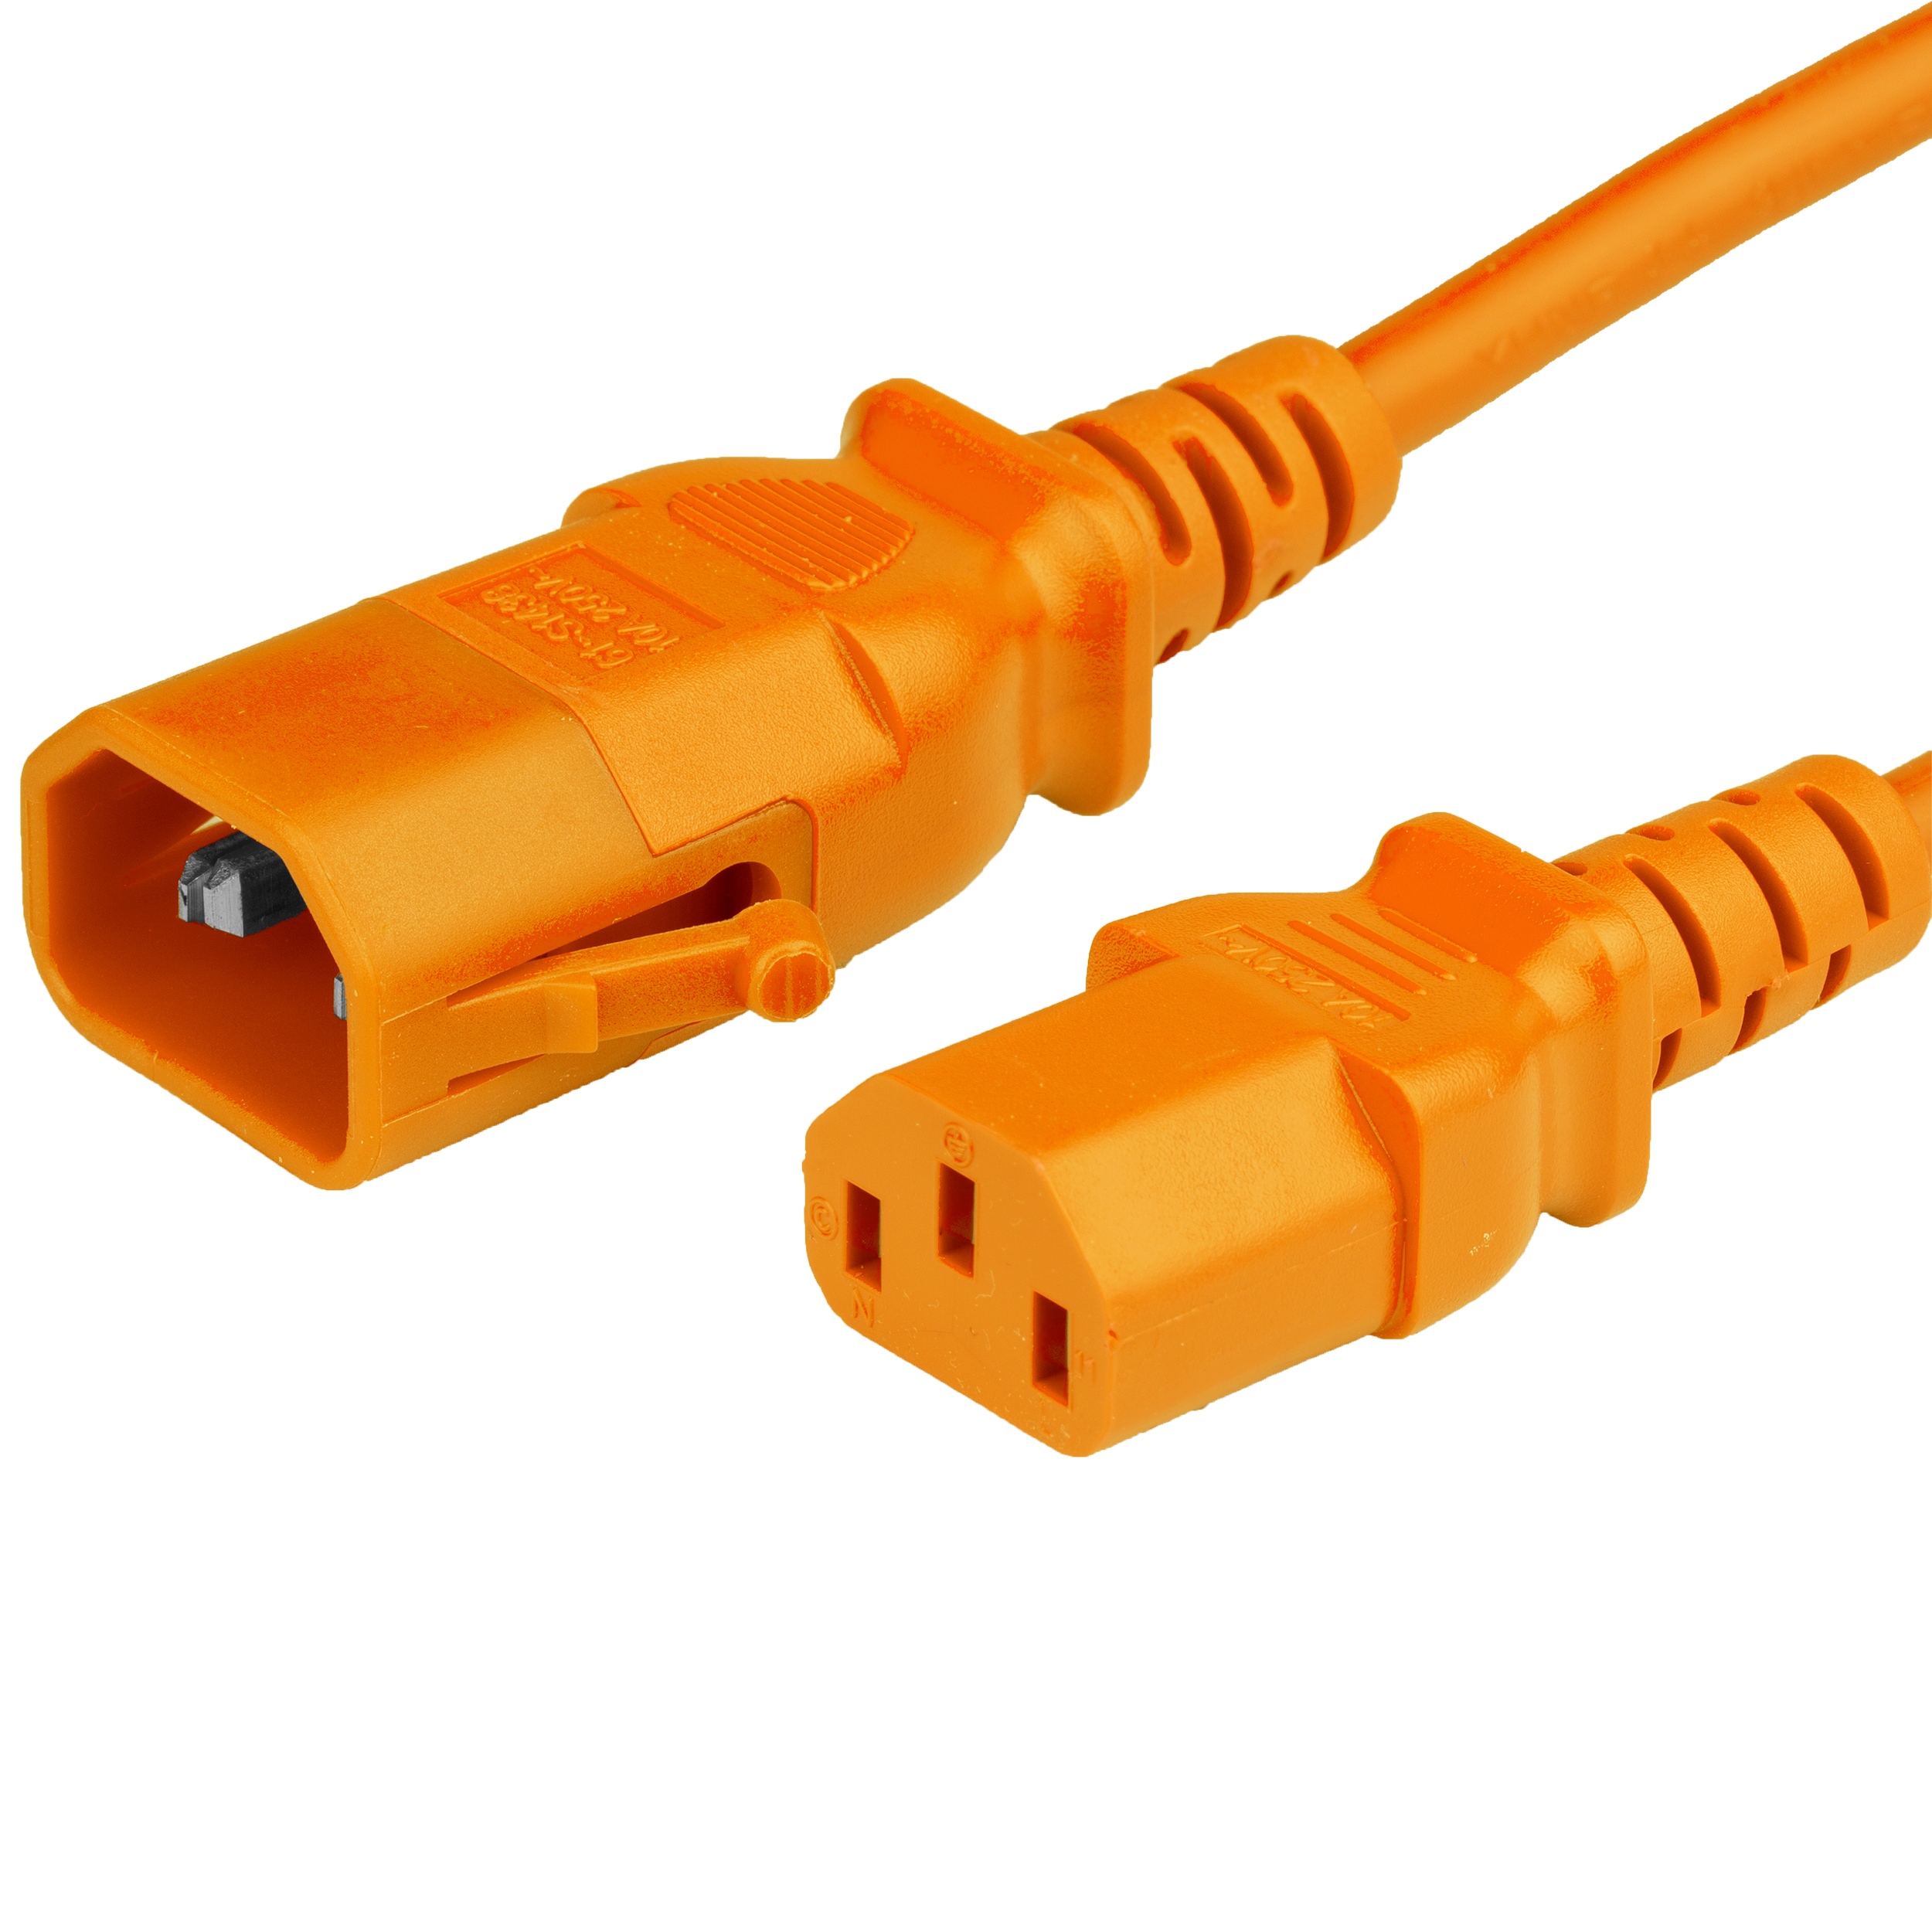 3FT P-LOCK C14 to C13 15A 250V 14awg 105c SJT ORANGE